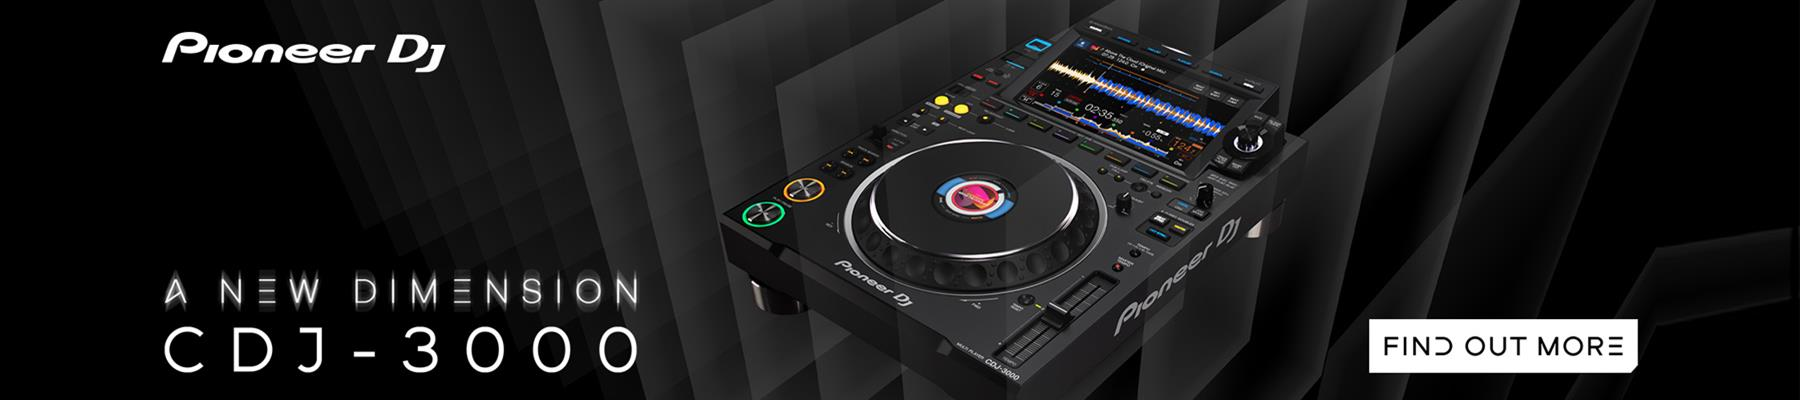 A New Dimension - The Pioneer CDJ-3000